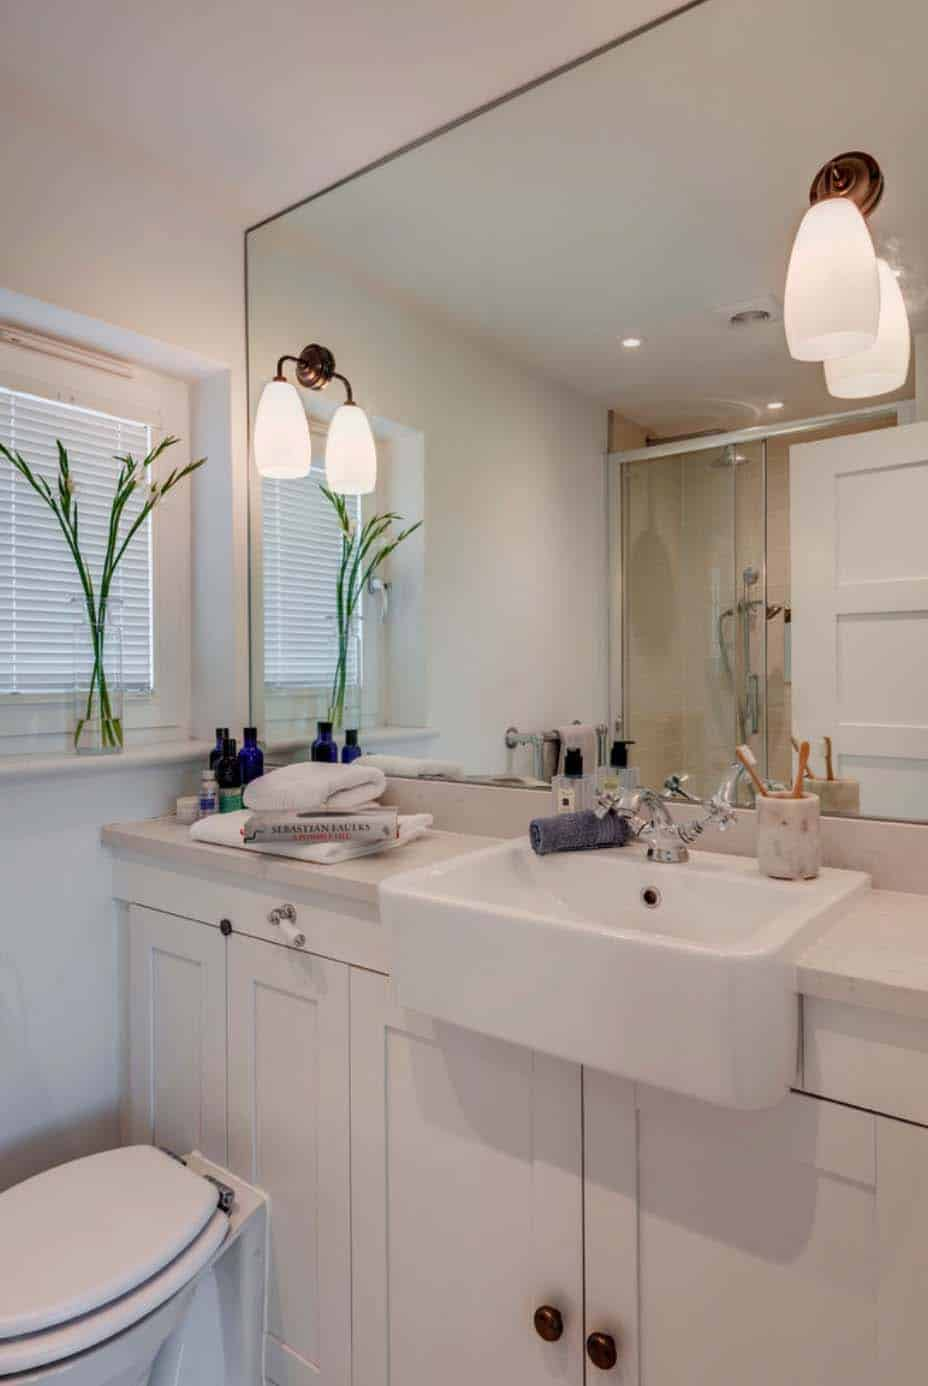 seaside-bungalow-renovation-woodford-architecture-16-1-kindesign